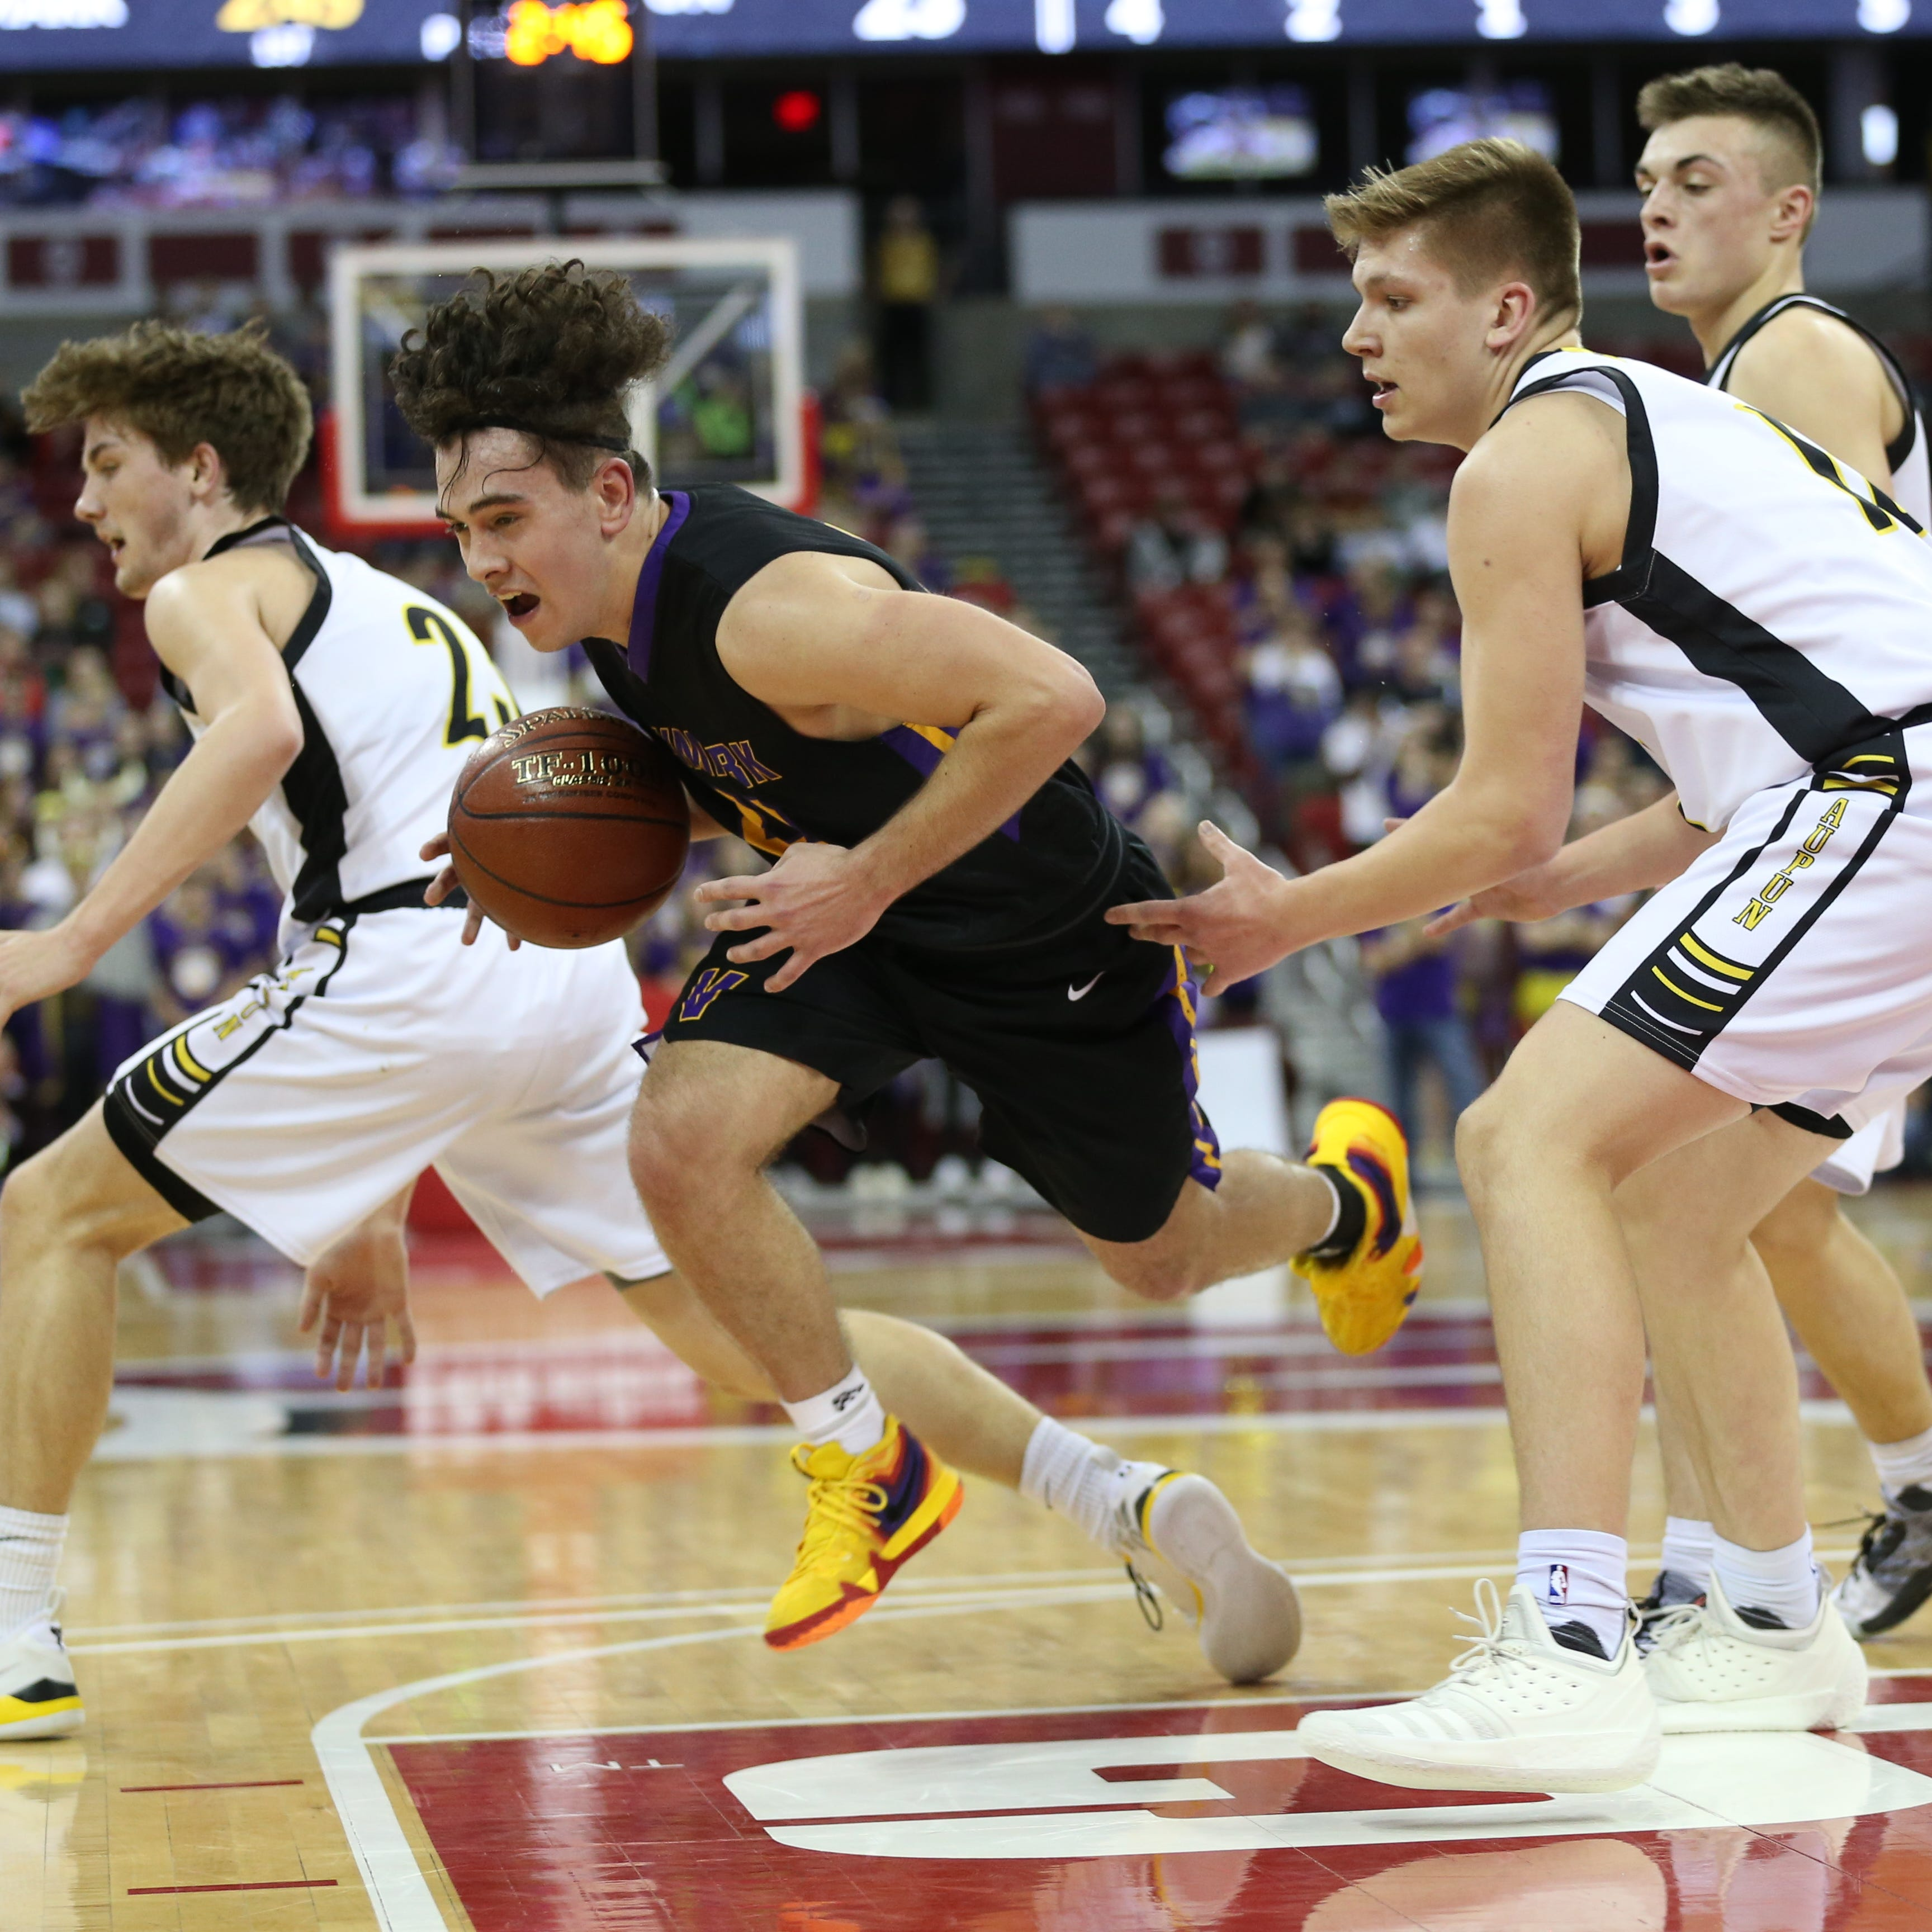 WIAA state basketball: Waupun's Marcus Domask too much for Denmark in semifinal